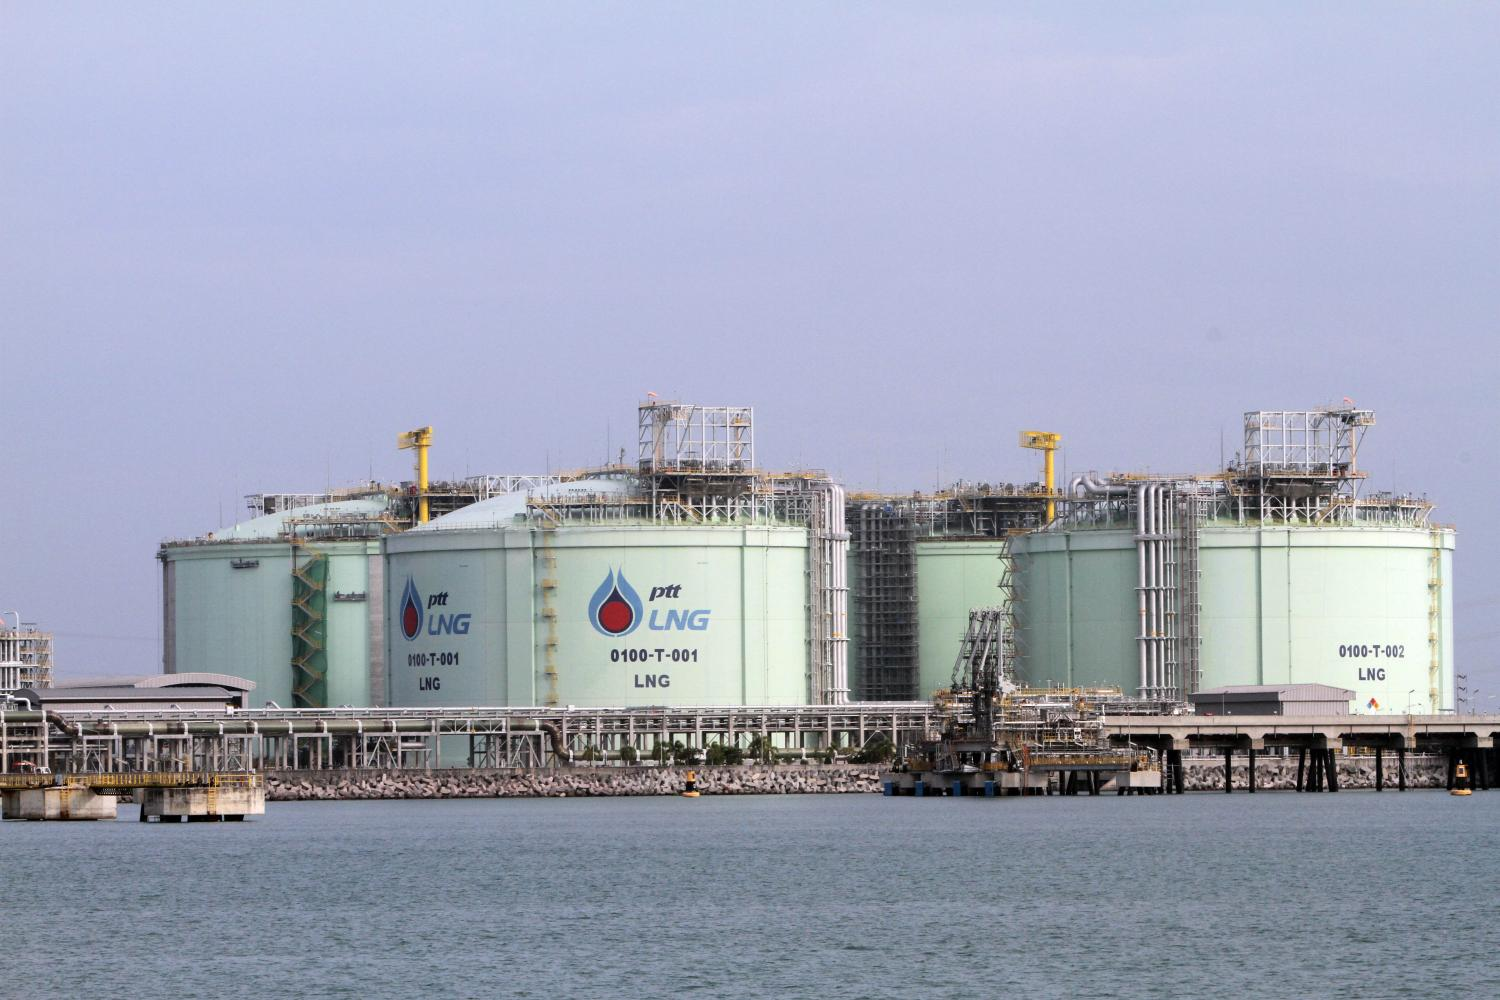 PTT's terminal in Map Ta Phut has already received one shipment of LNG from spot markets. Apichart Jinakul